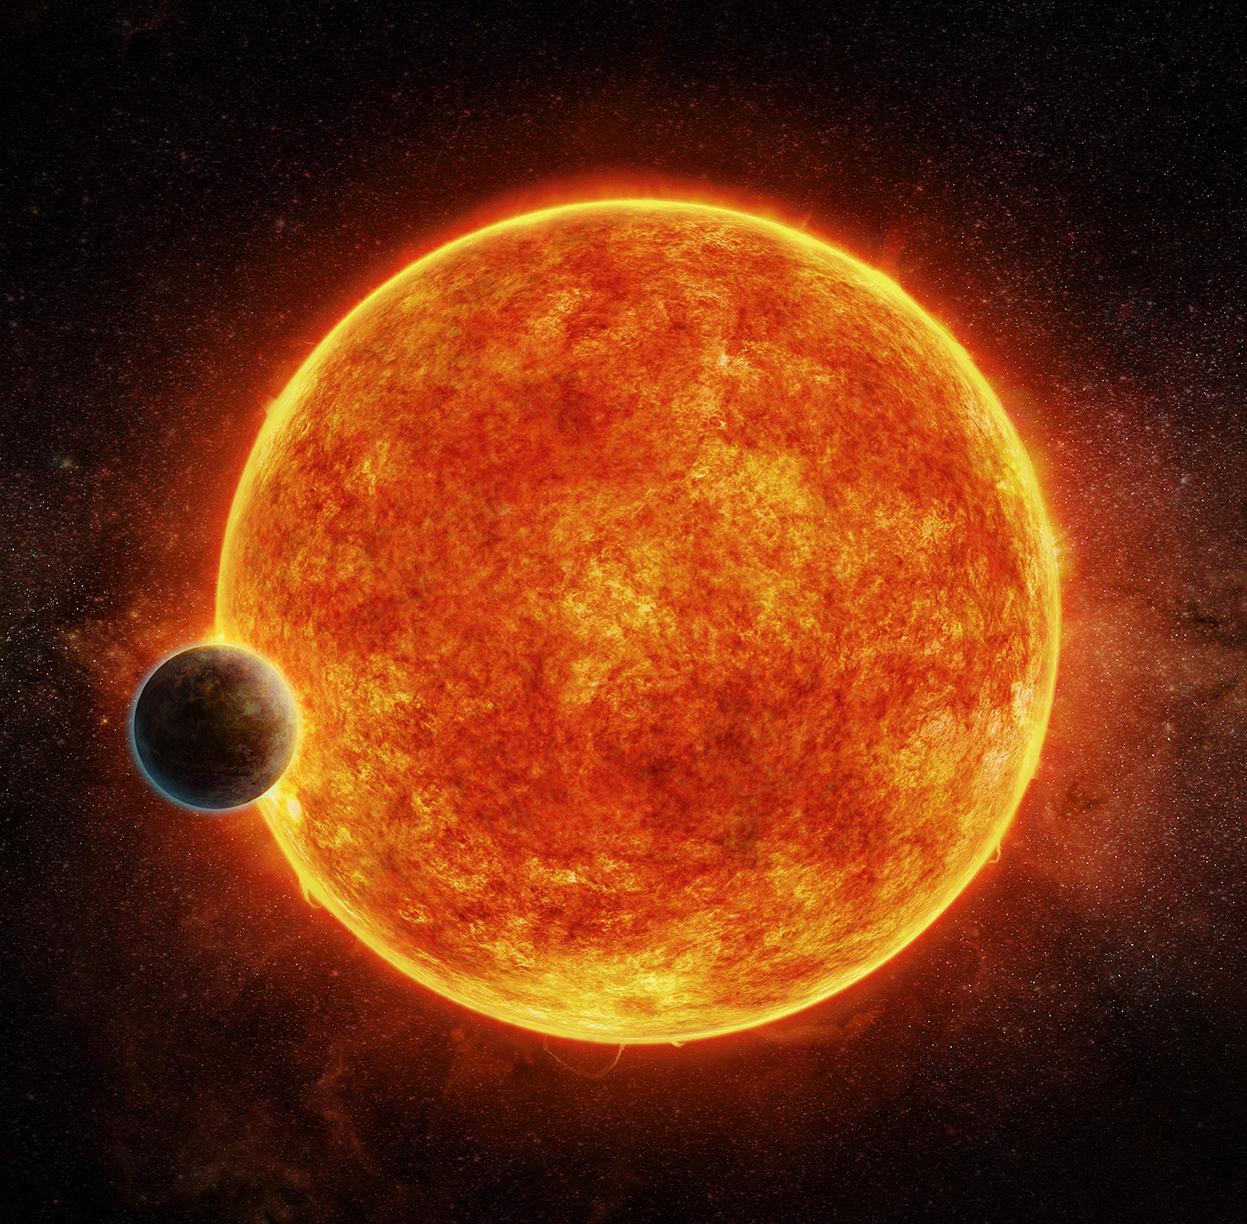 Nearby earth-like planet may be just right for life